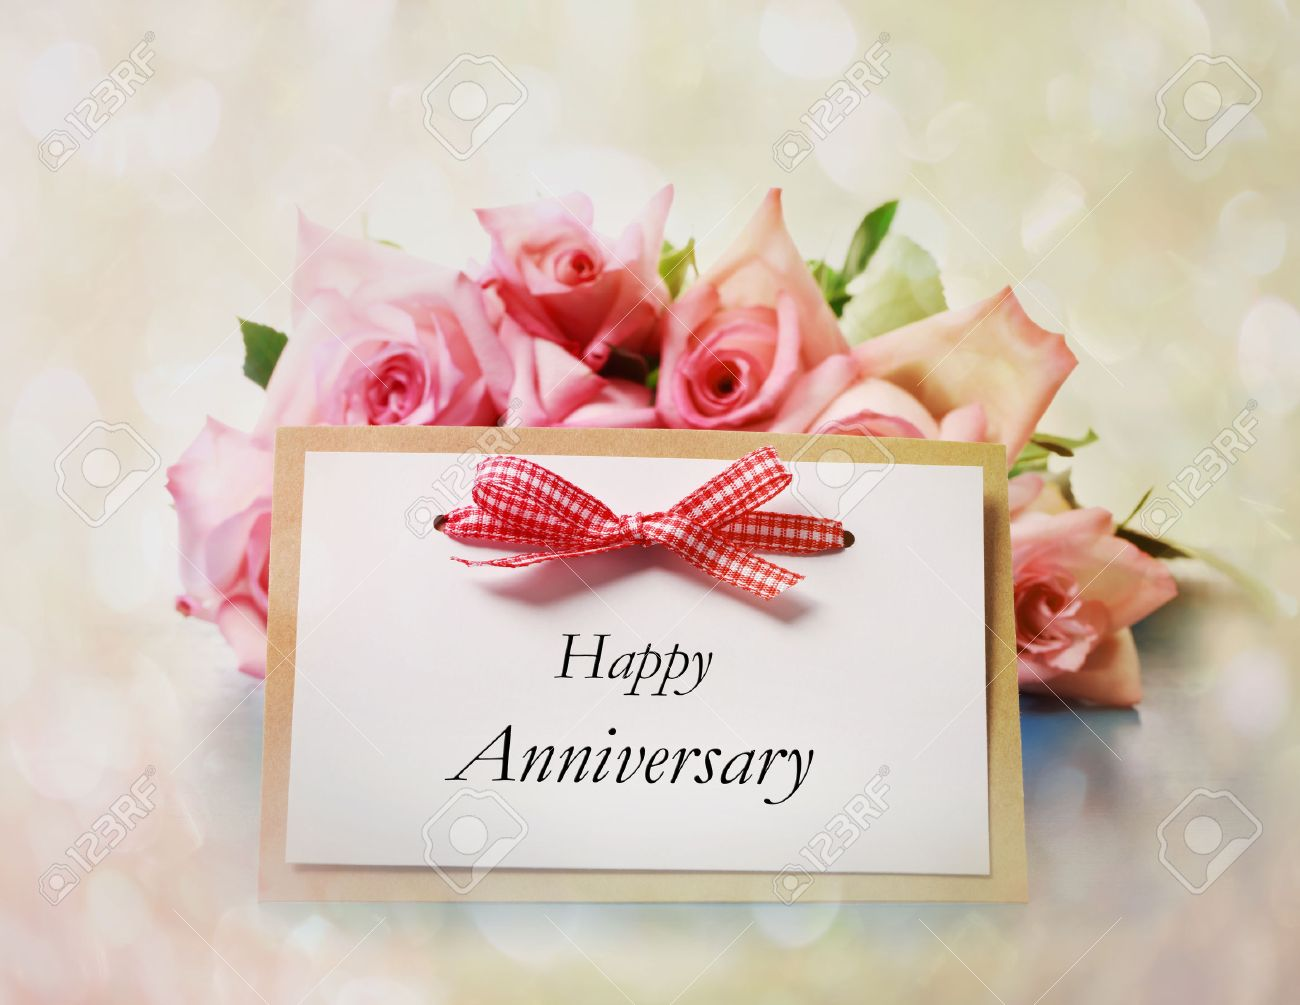 Happy Anniversary Greeting Card With Roses Stock Photo Picture And